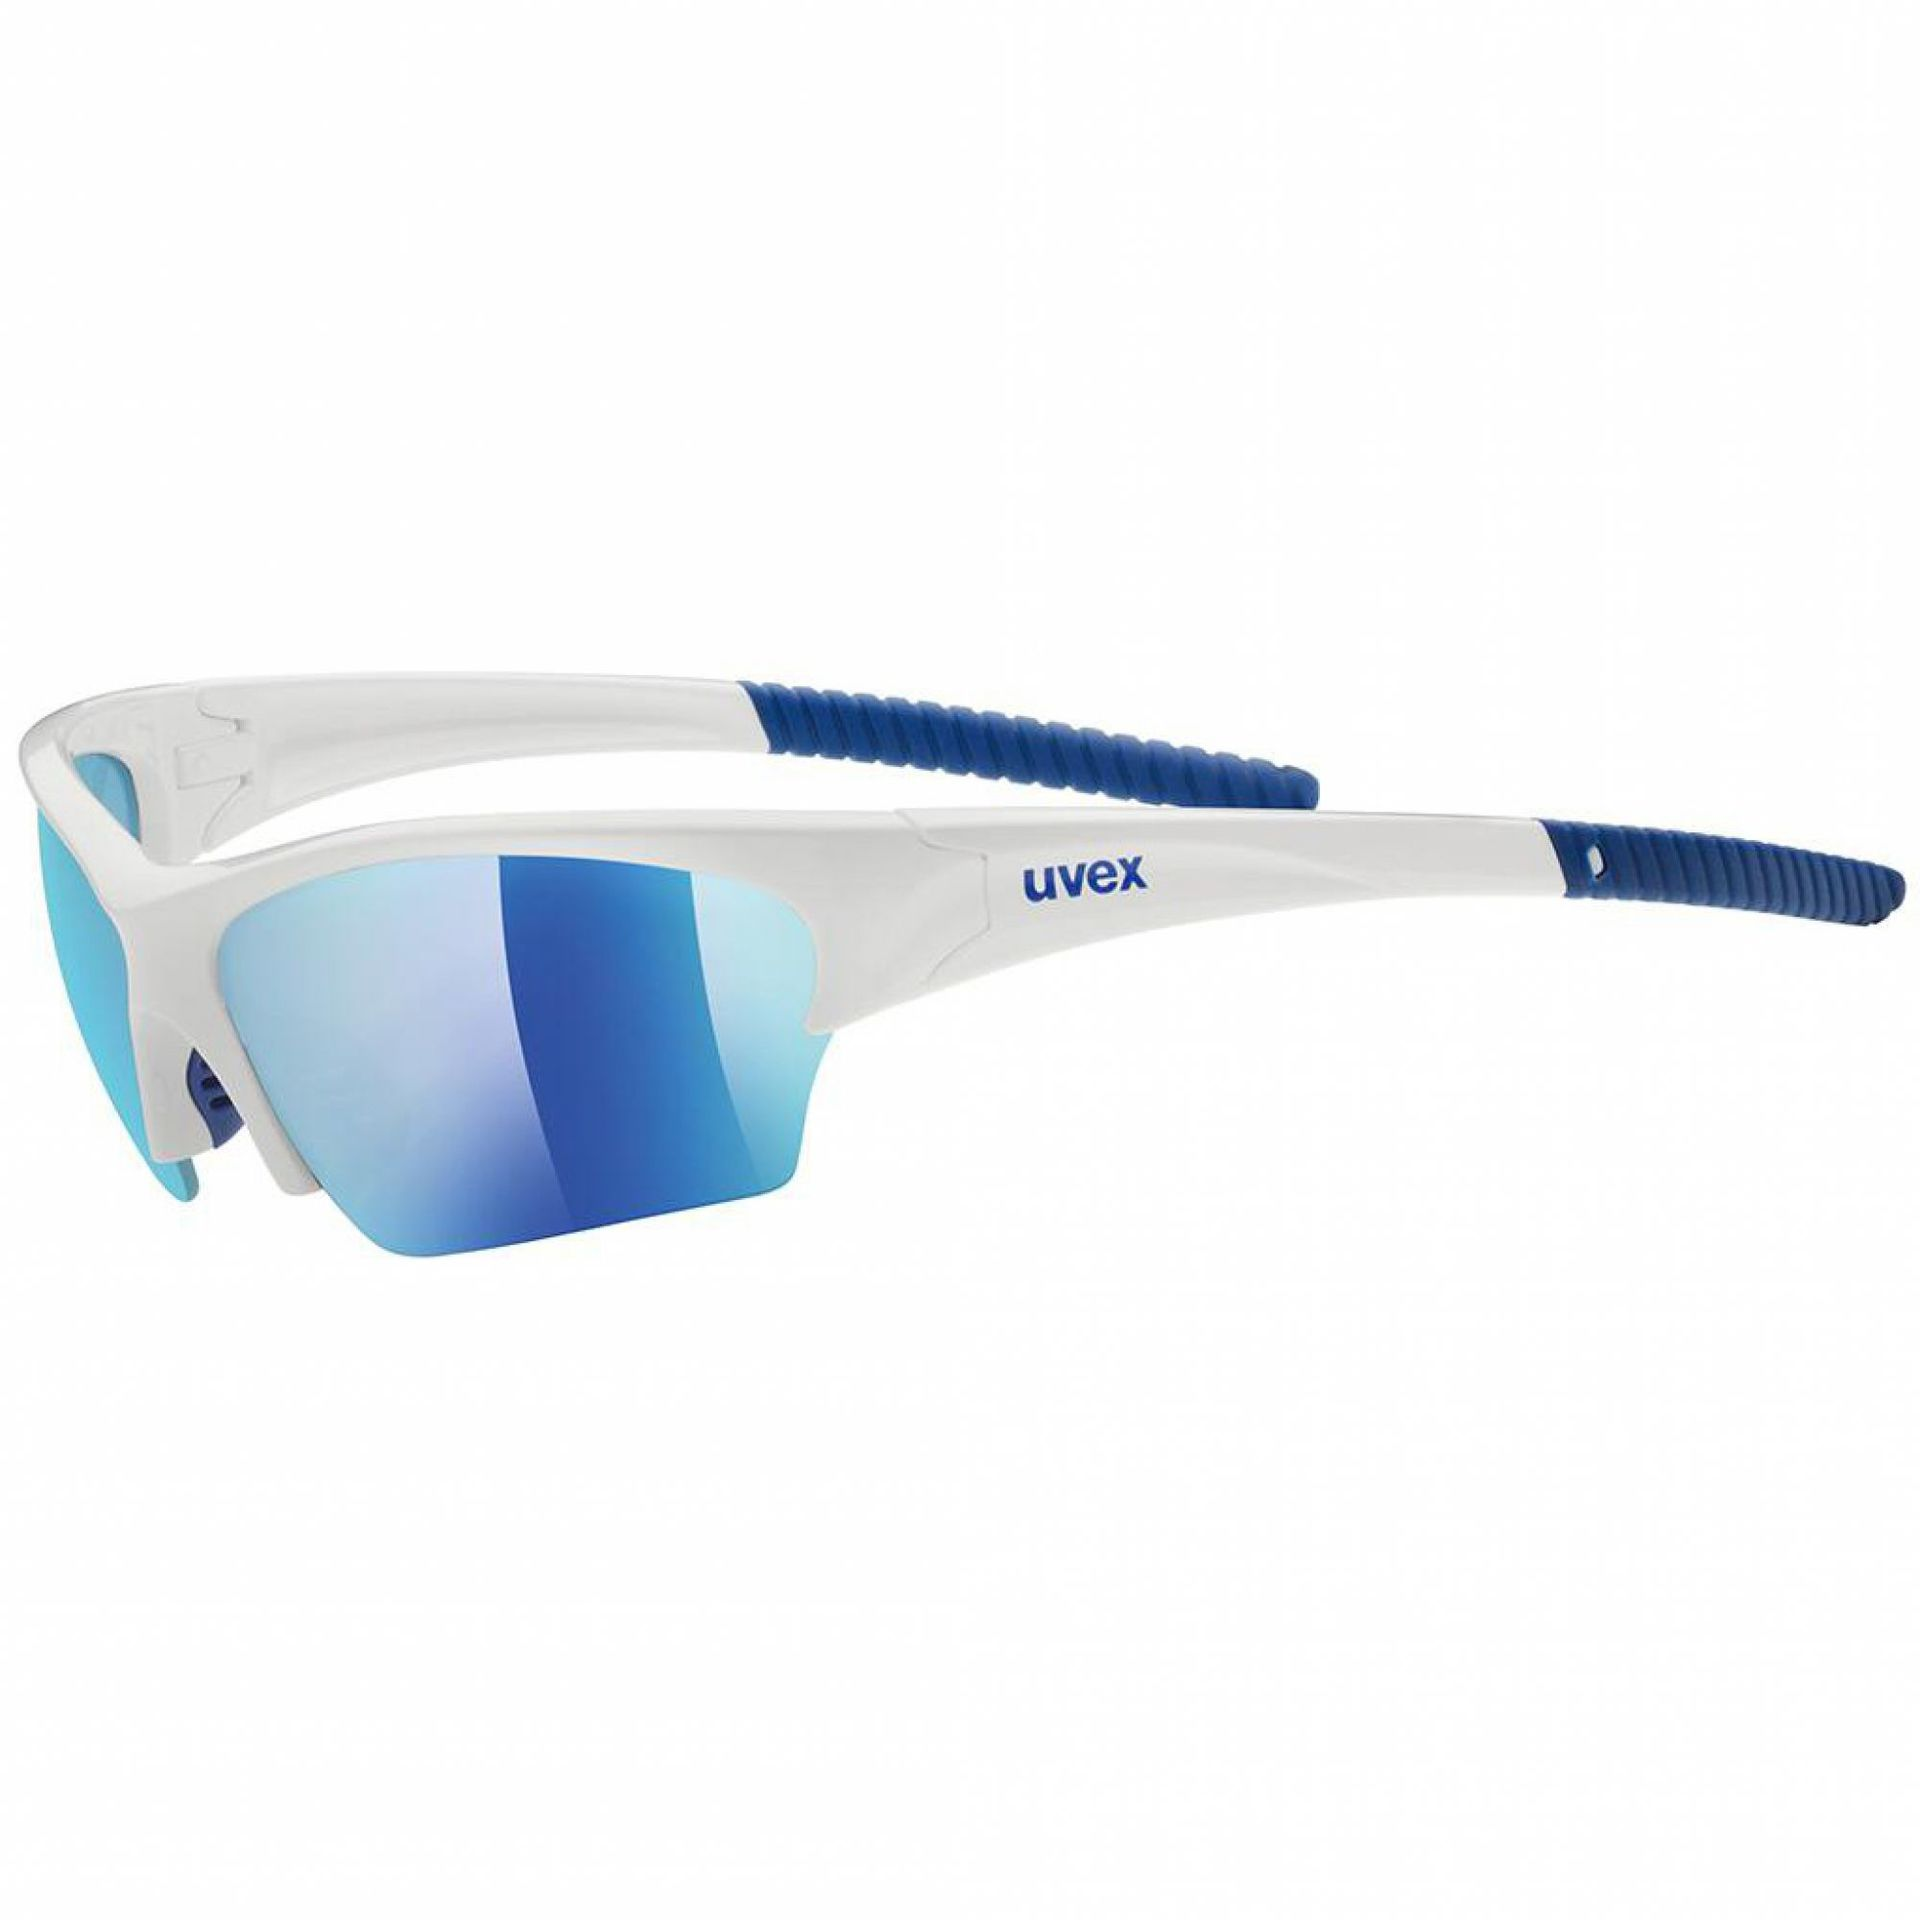 OKULARY UVEX SUNSATION WHITE BLUE